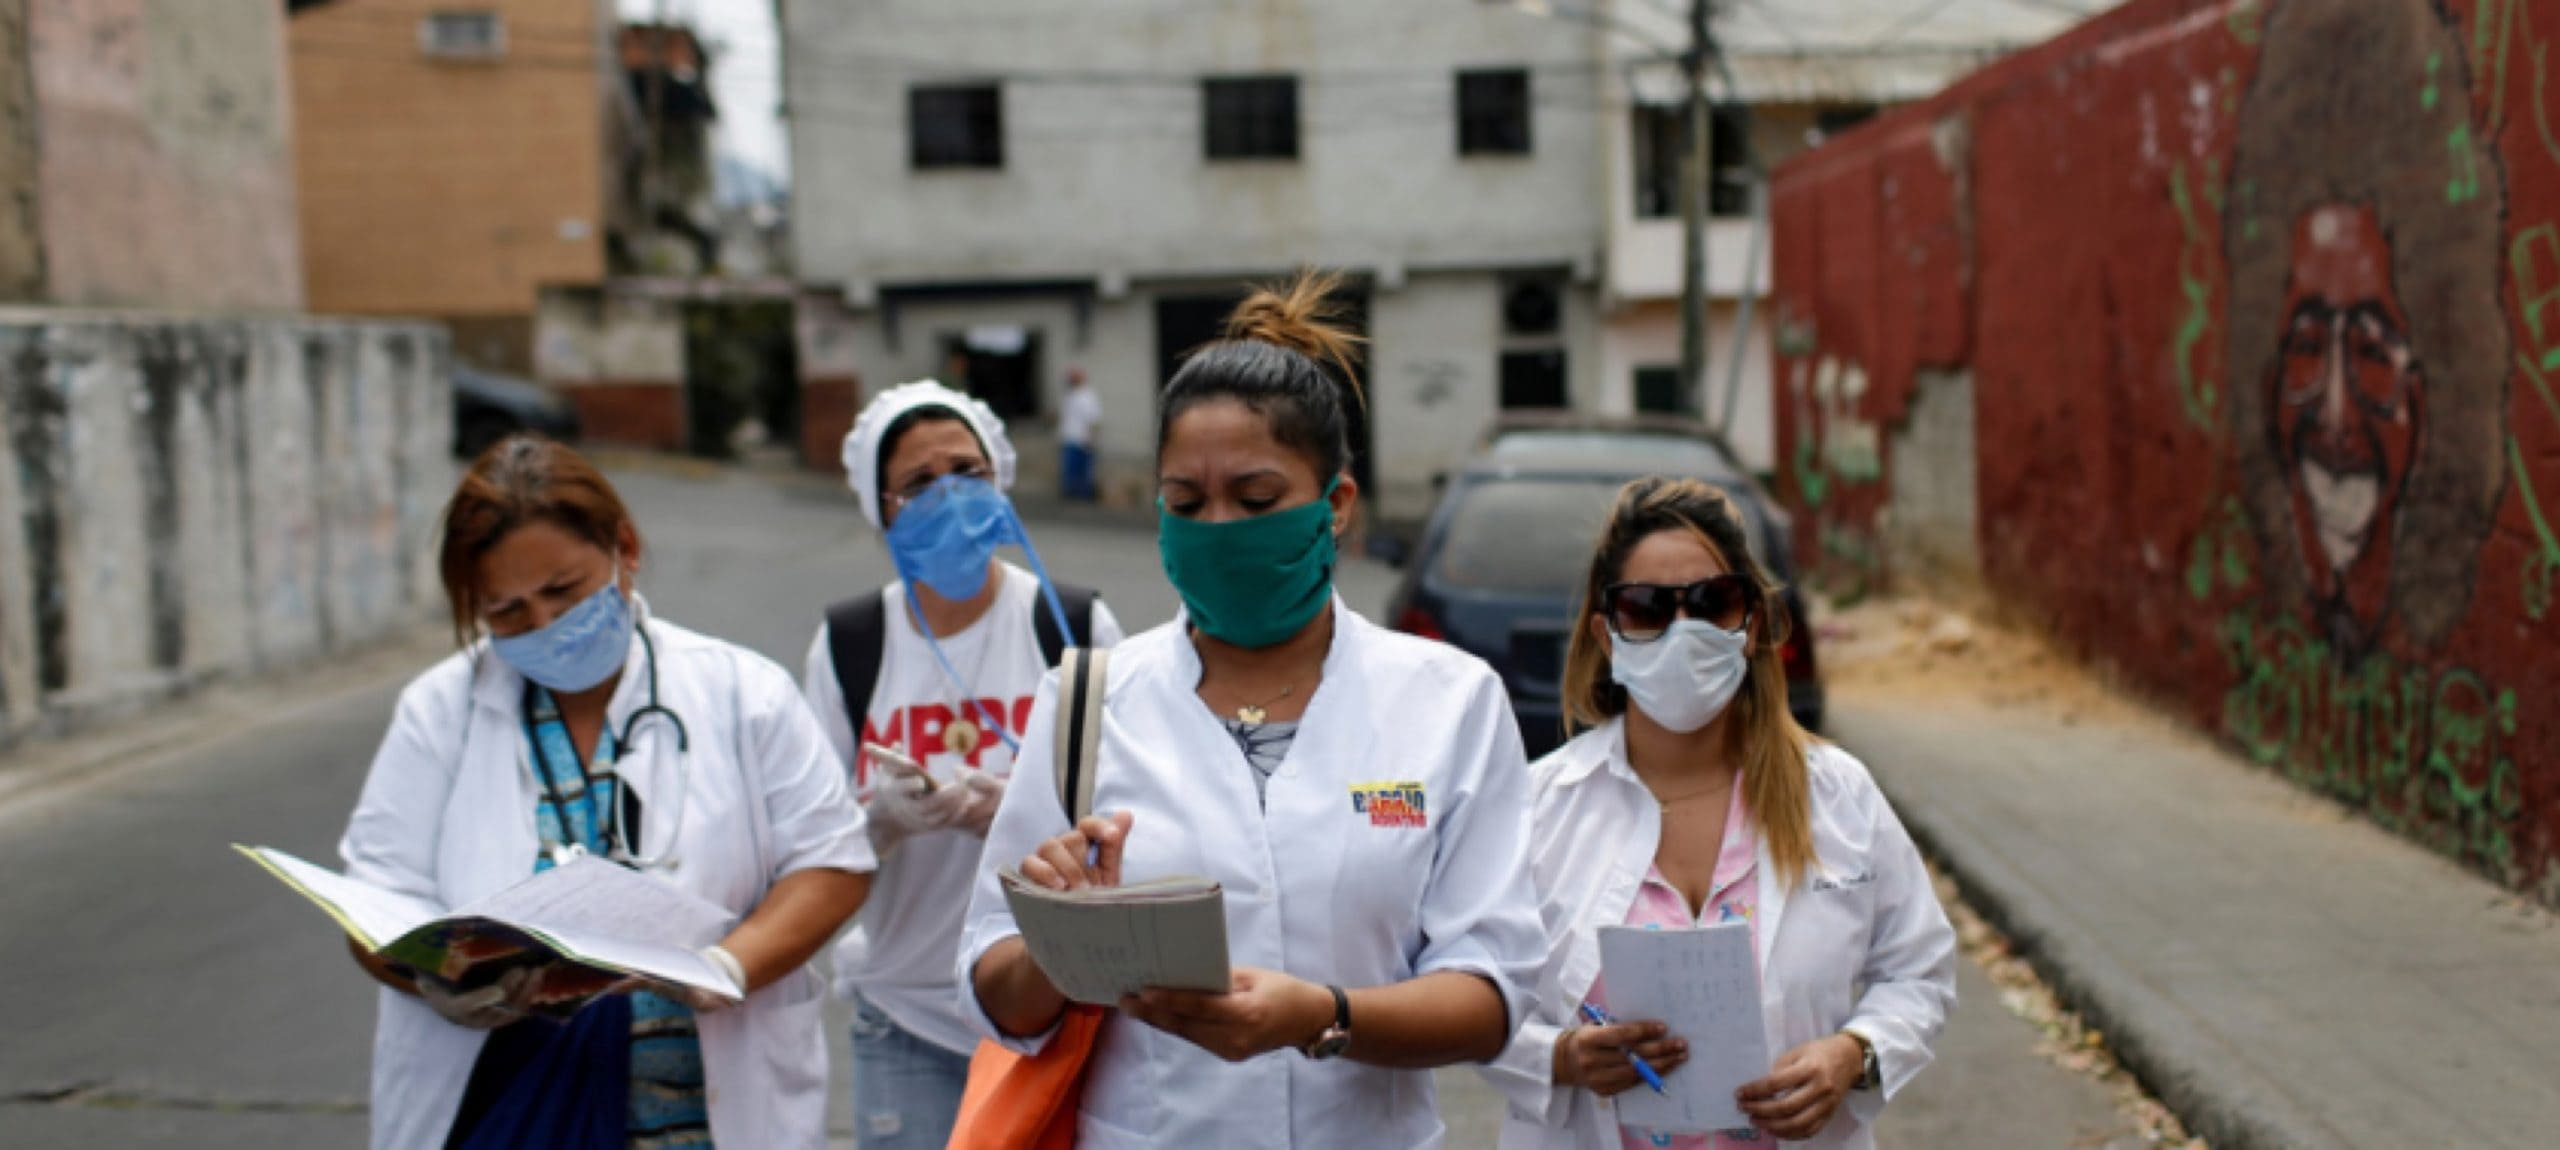 Cuban and Venezuelan healthcare workers carry out a COVID-19 inspection in a Caracas slum Image: REUTERS/Manaure Quintero